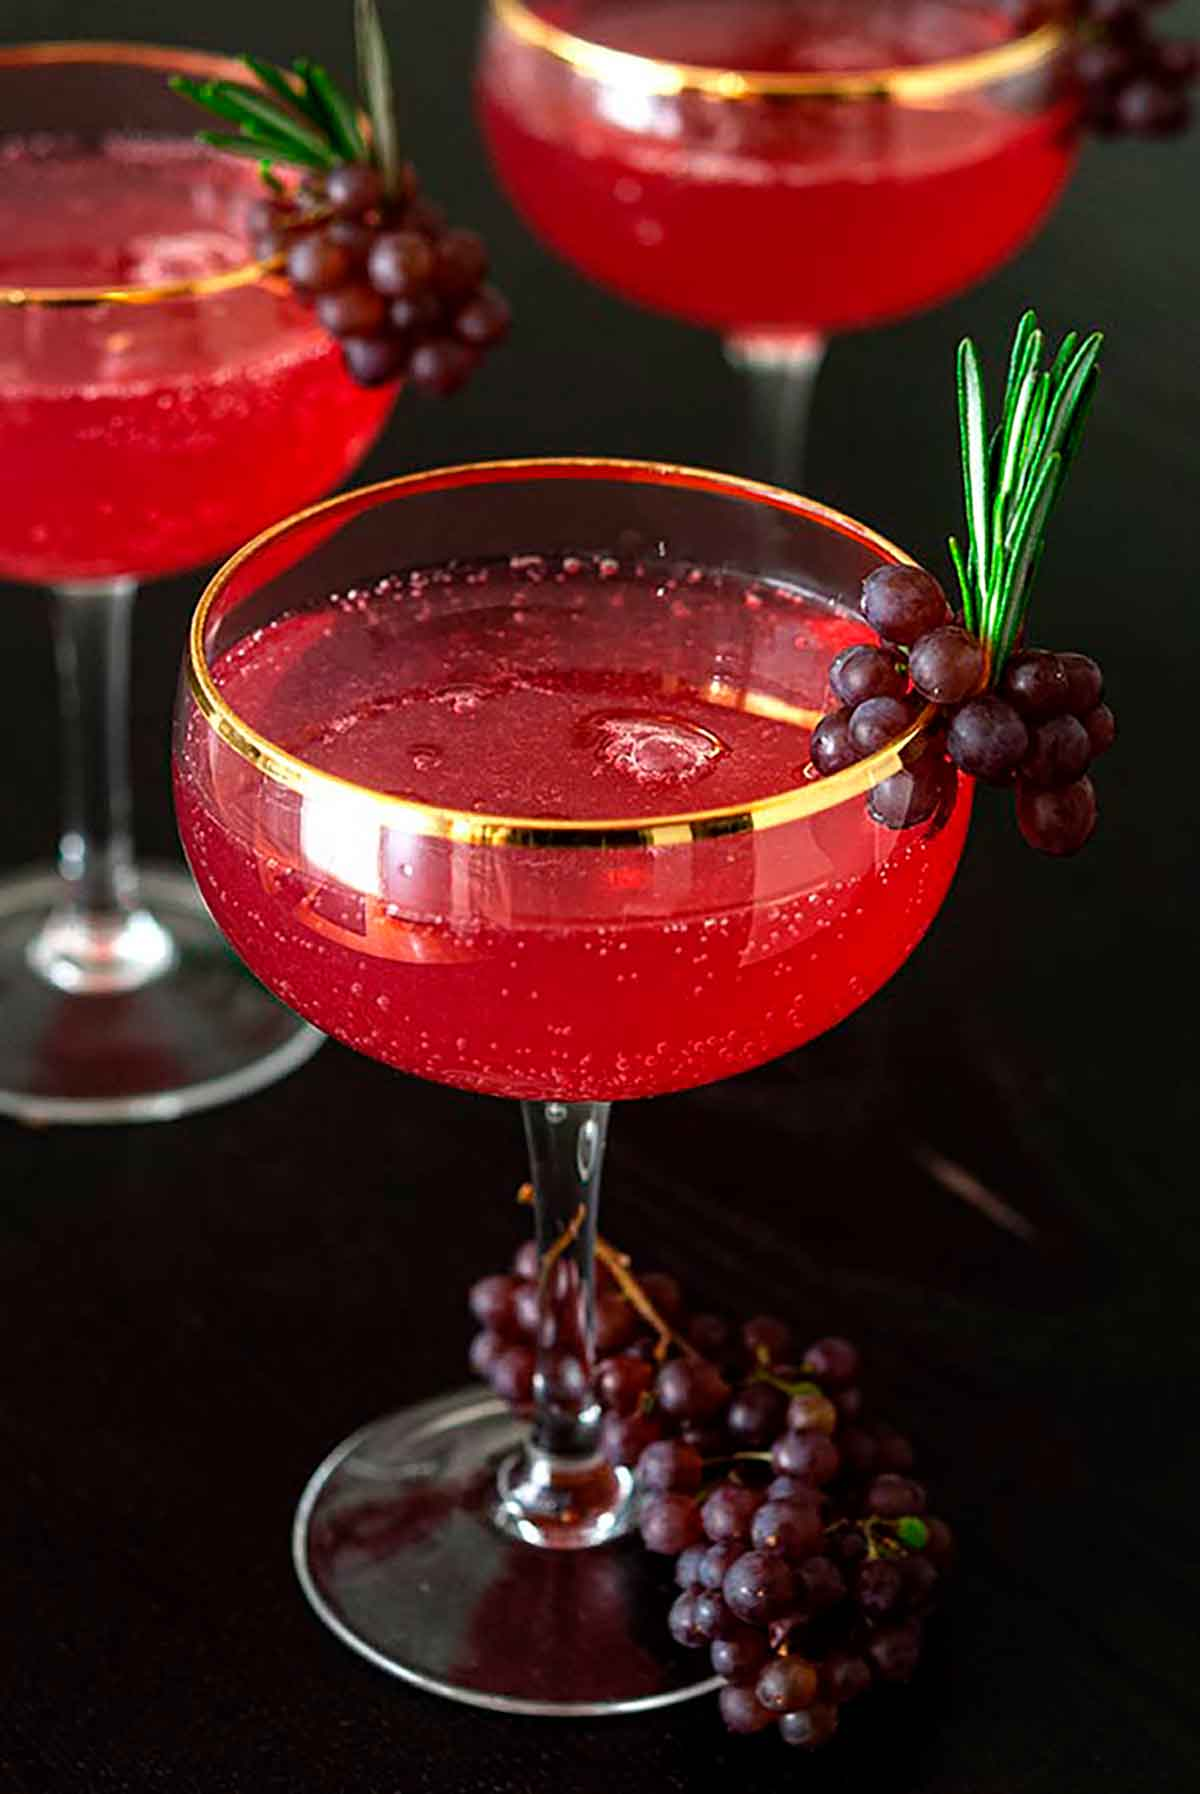 3 cocktails garnished with small grapes and sprigs of rosemary.